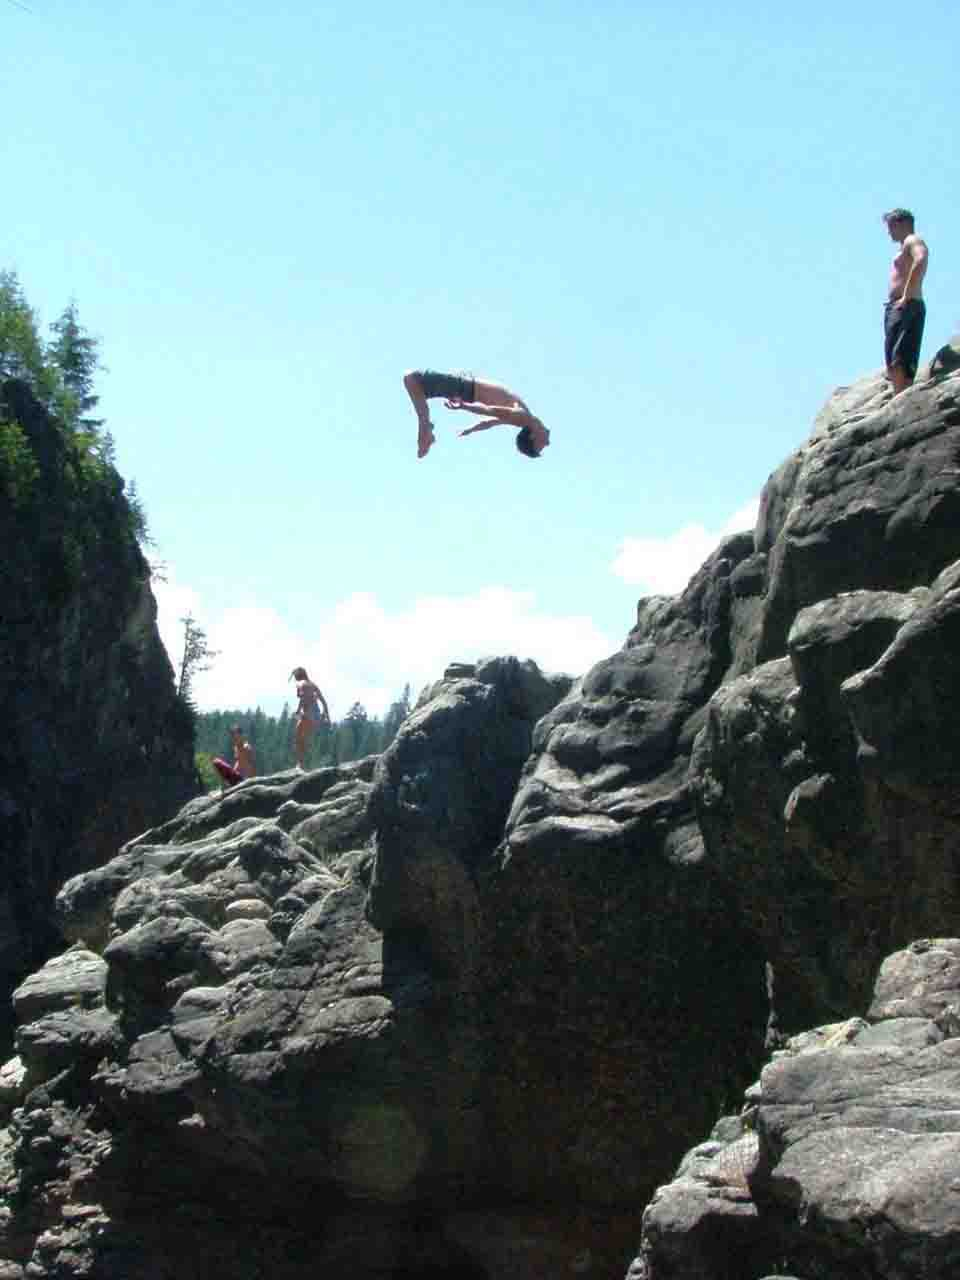 me gainering a sick cliff